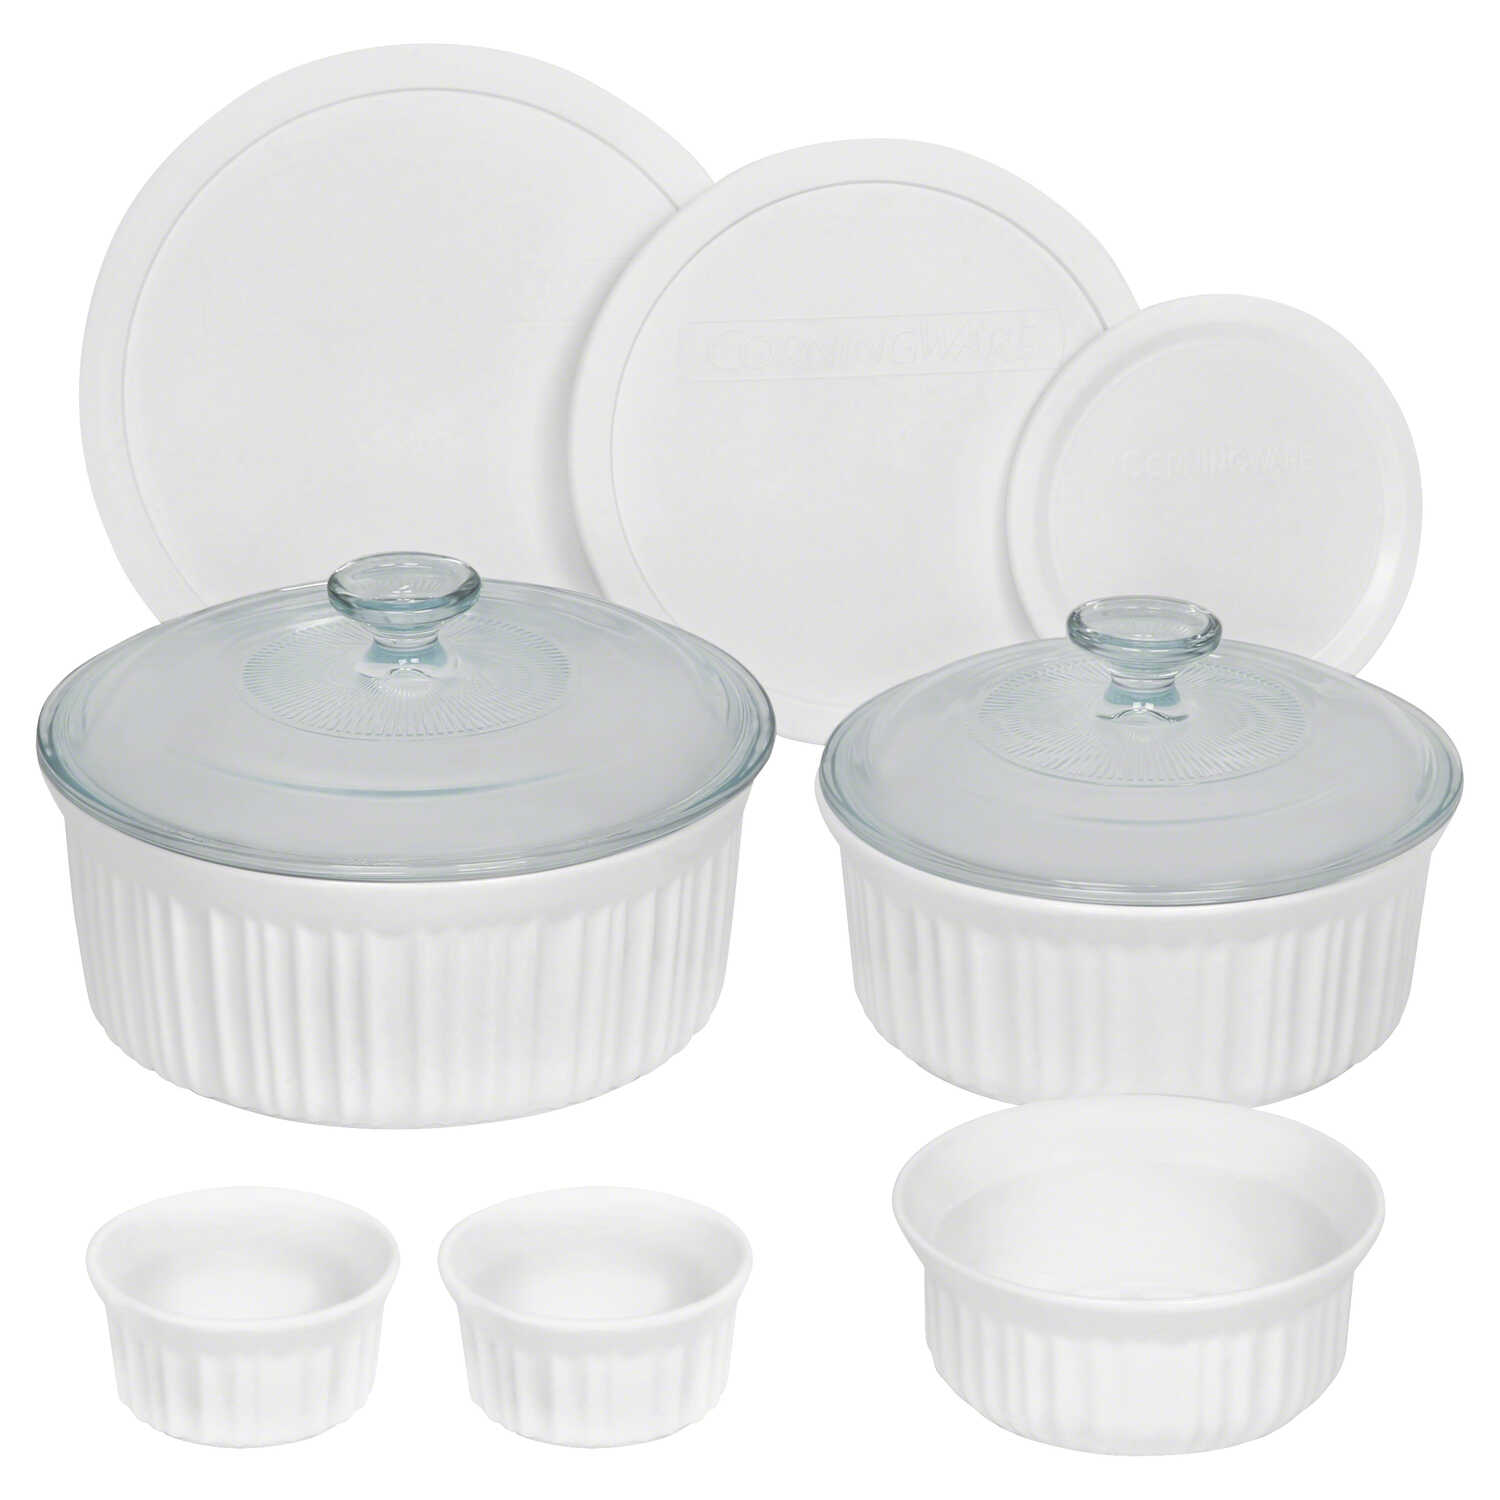 Corningware  Ceramic  Bake Set  White